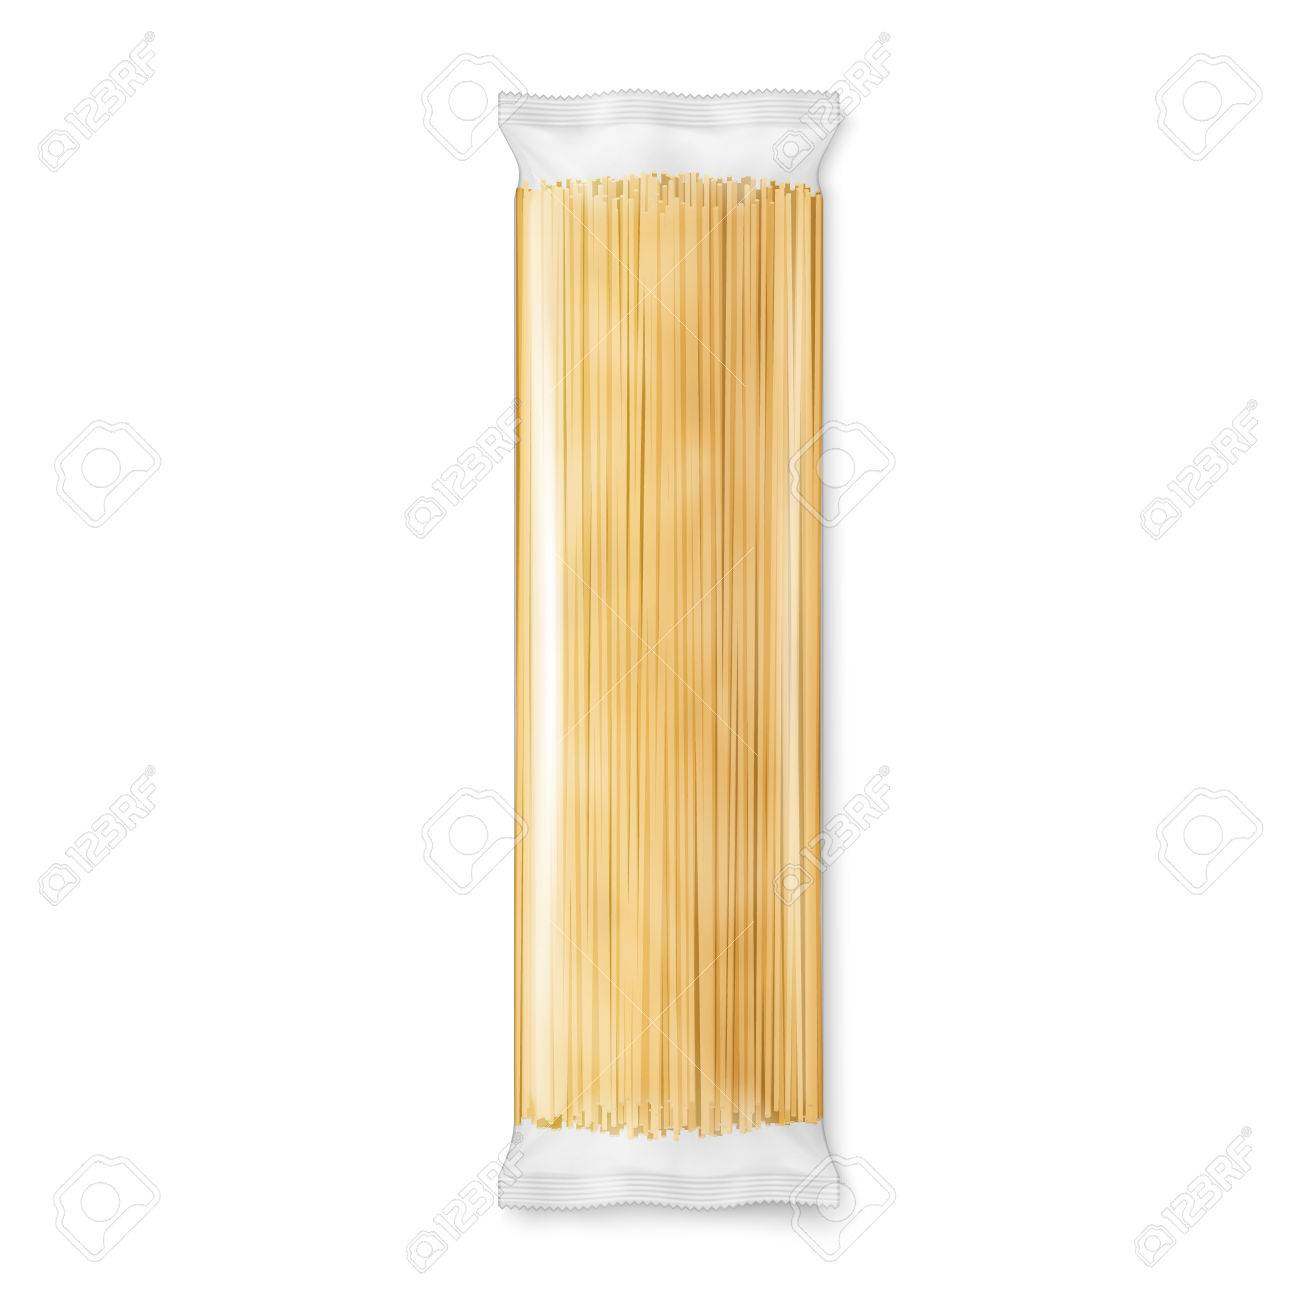 spaghetti or capellini pasta transparent package isolated on